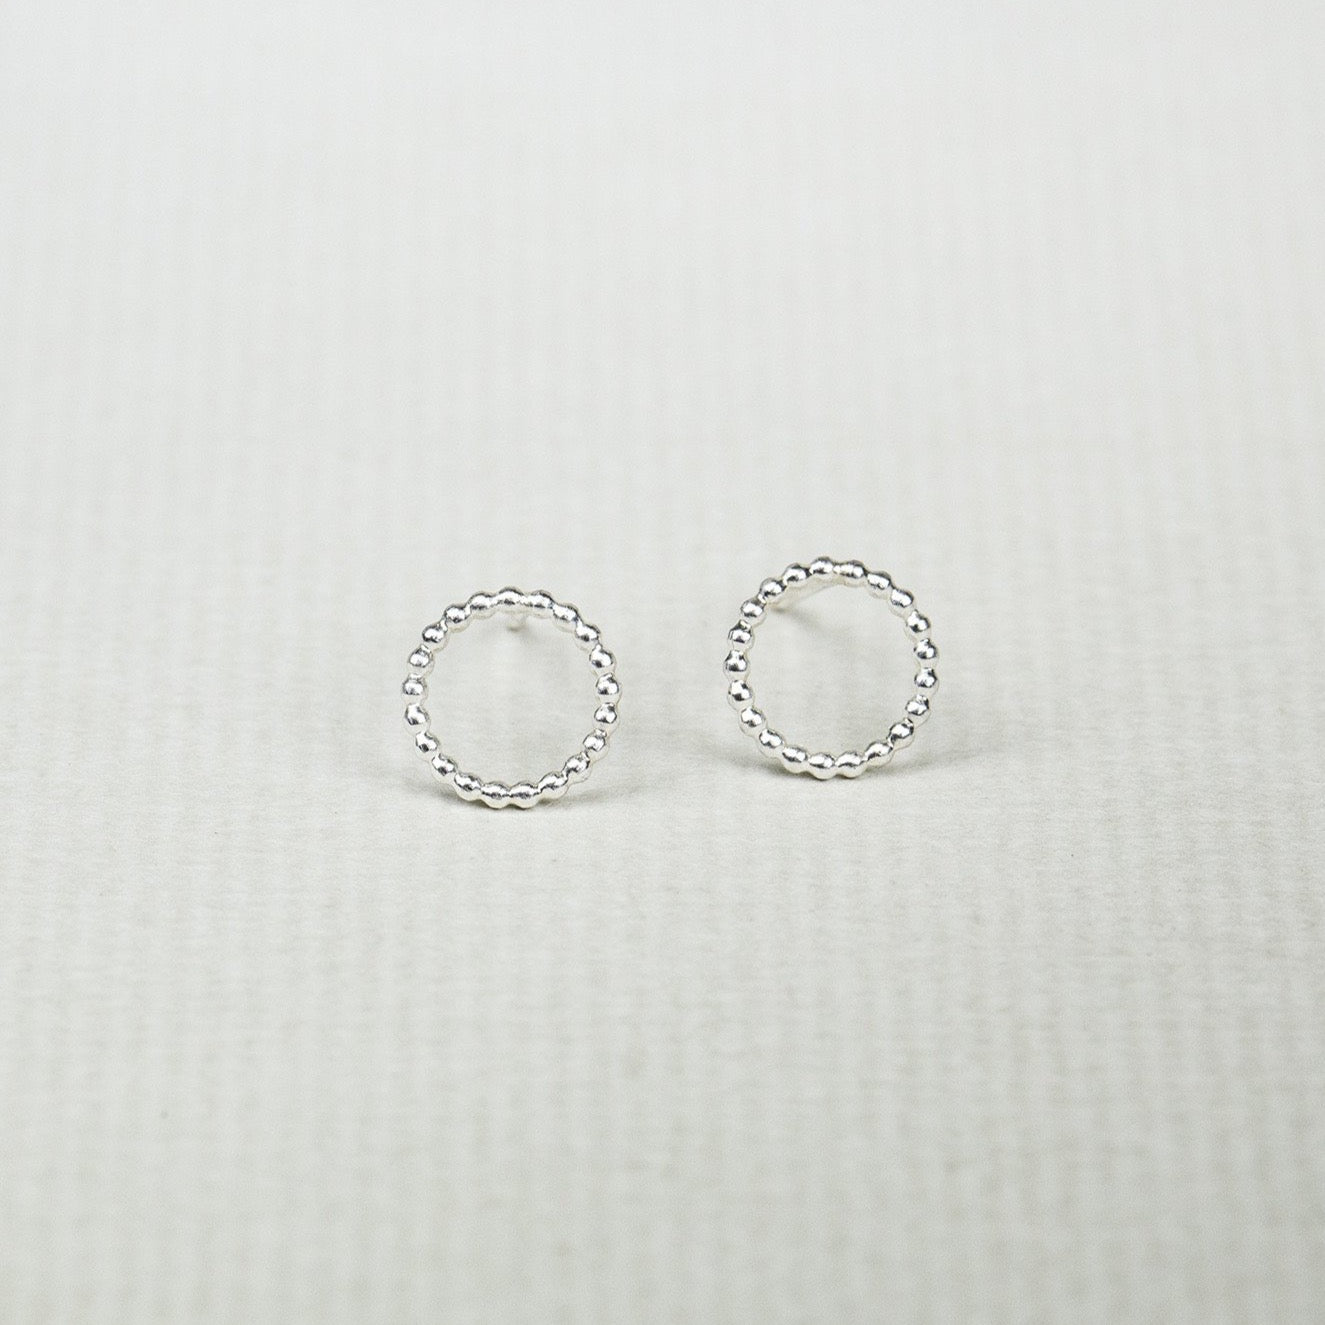 Beaded Circle Stud Earrings in Silver